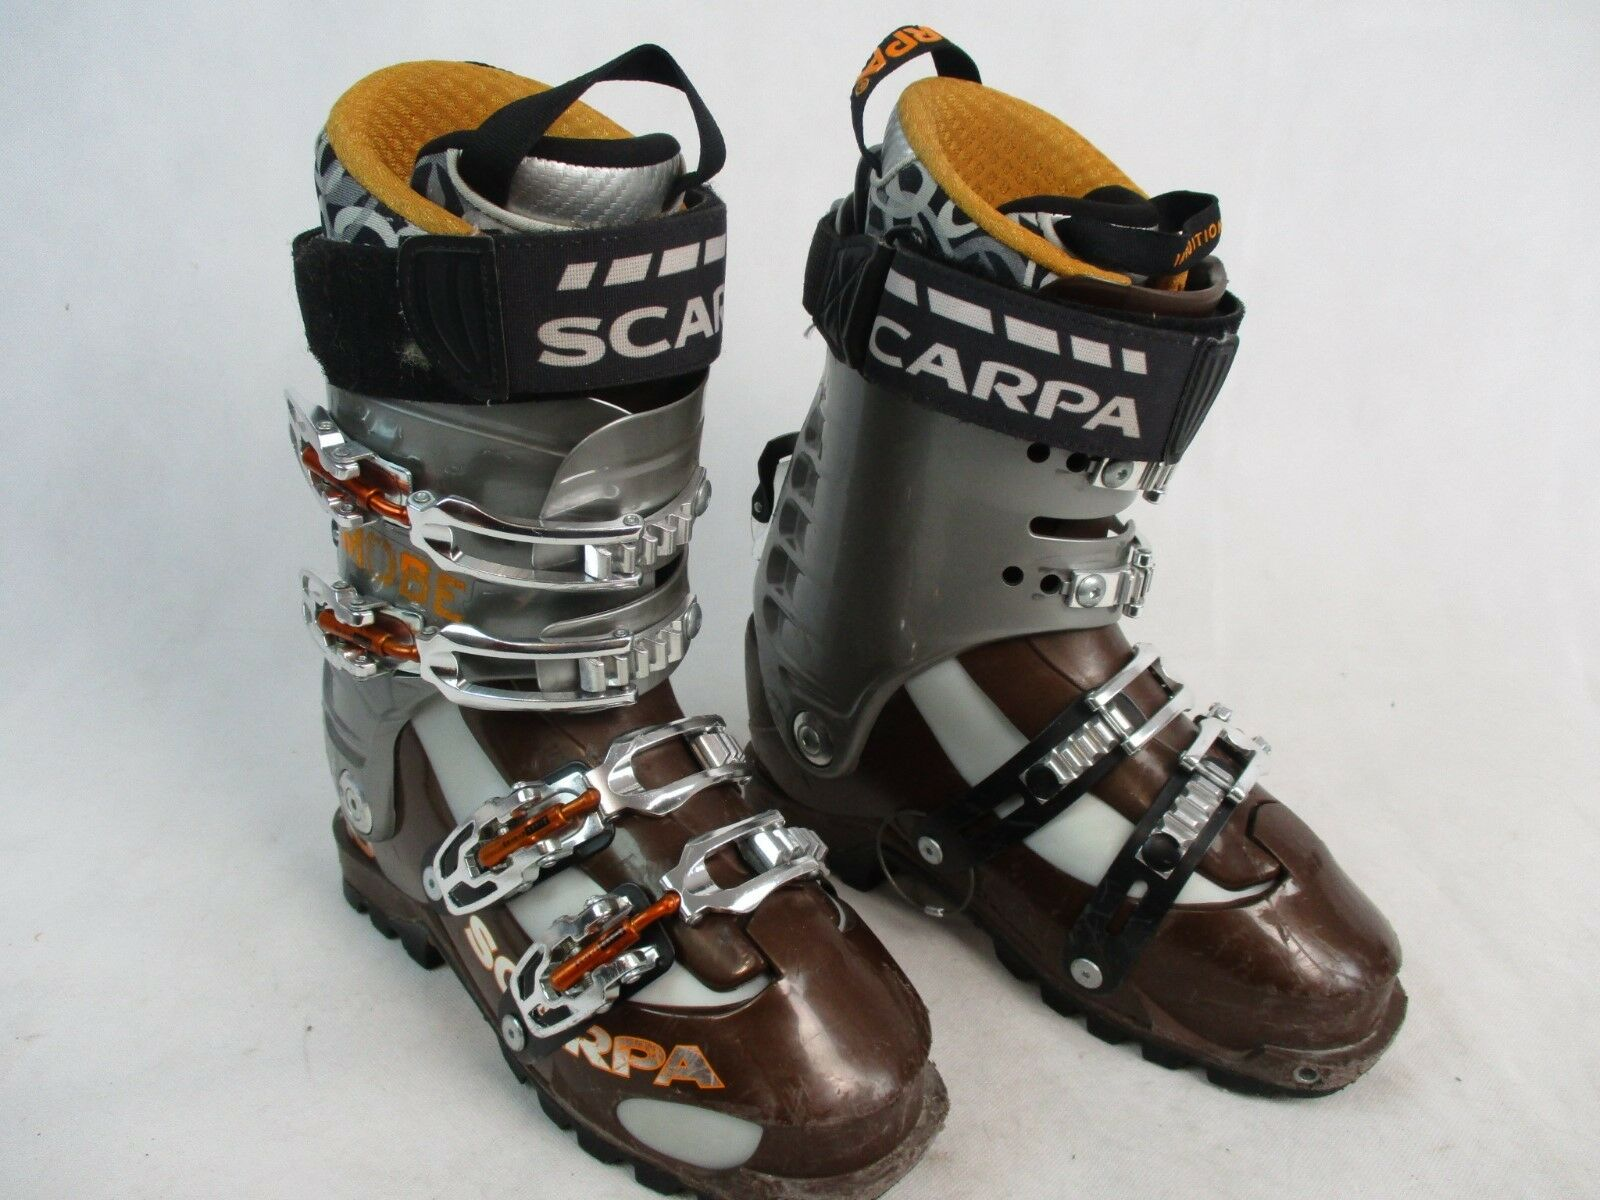 SCARPA MOBE AT SKI TOURING BOOTS - INTUITION LINER -  SIZE 26 BROWN AND orange  10 days return